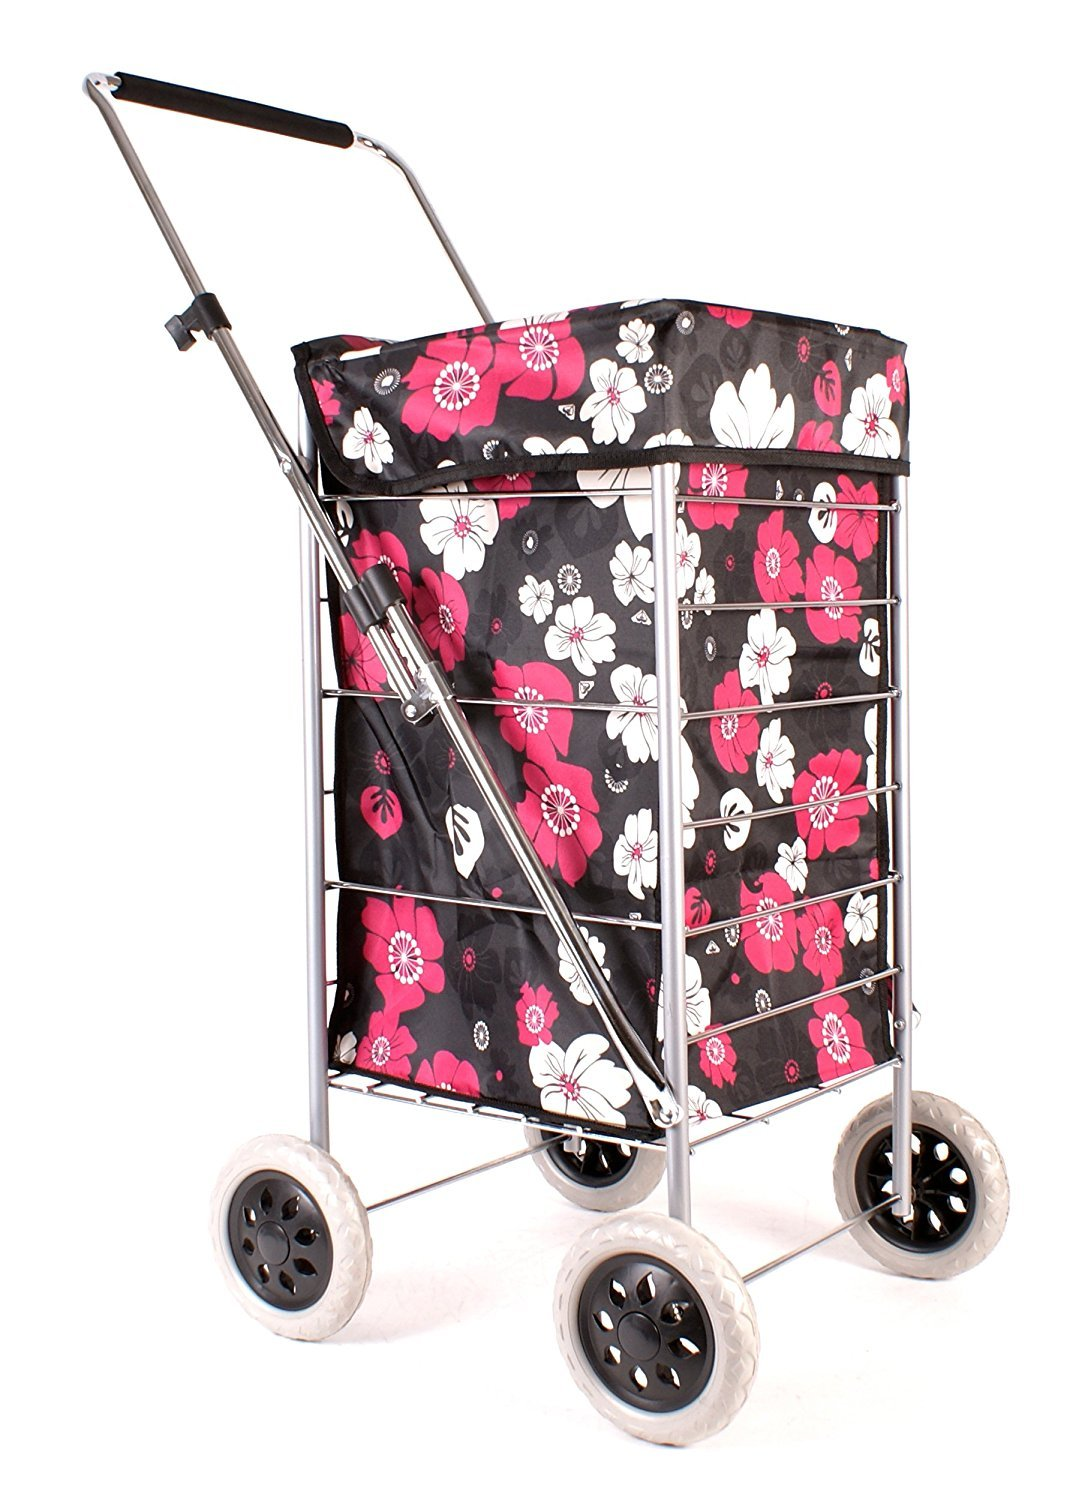 1e7fa3377b Premium 4 Wheel Shopping Trolley with Adjustable Handle Black with Pink and  White Floral Print  Amazon.co.uk  Luggage